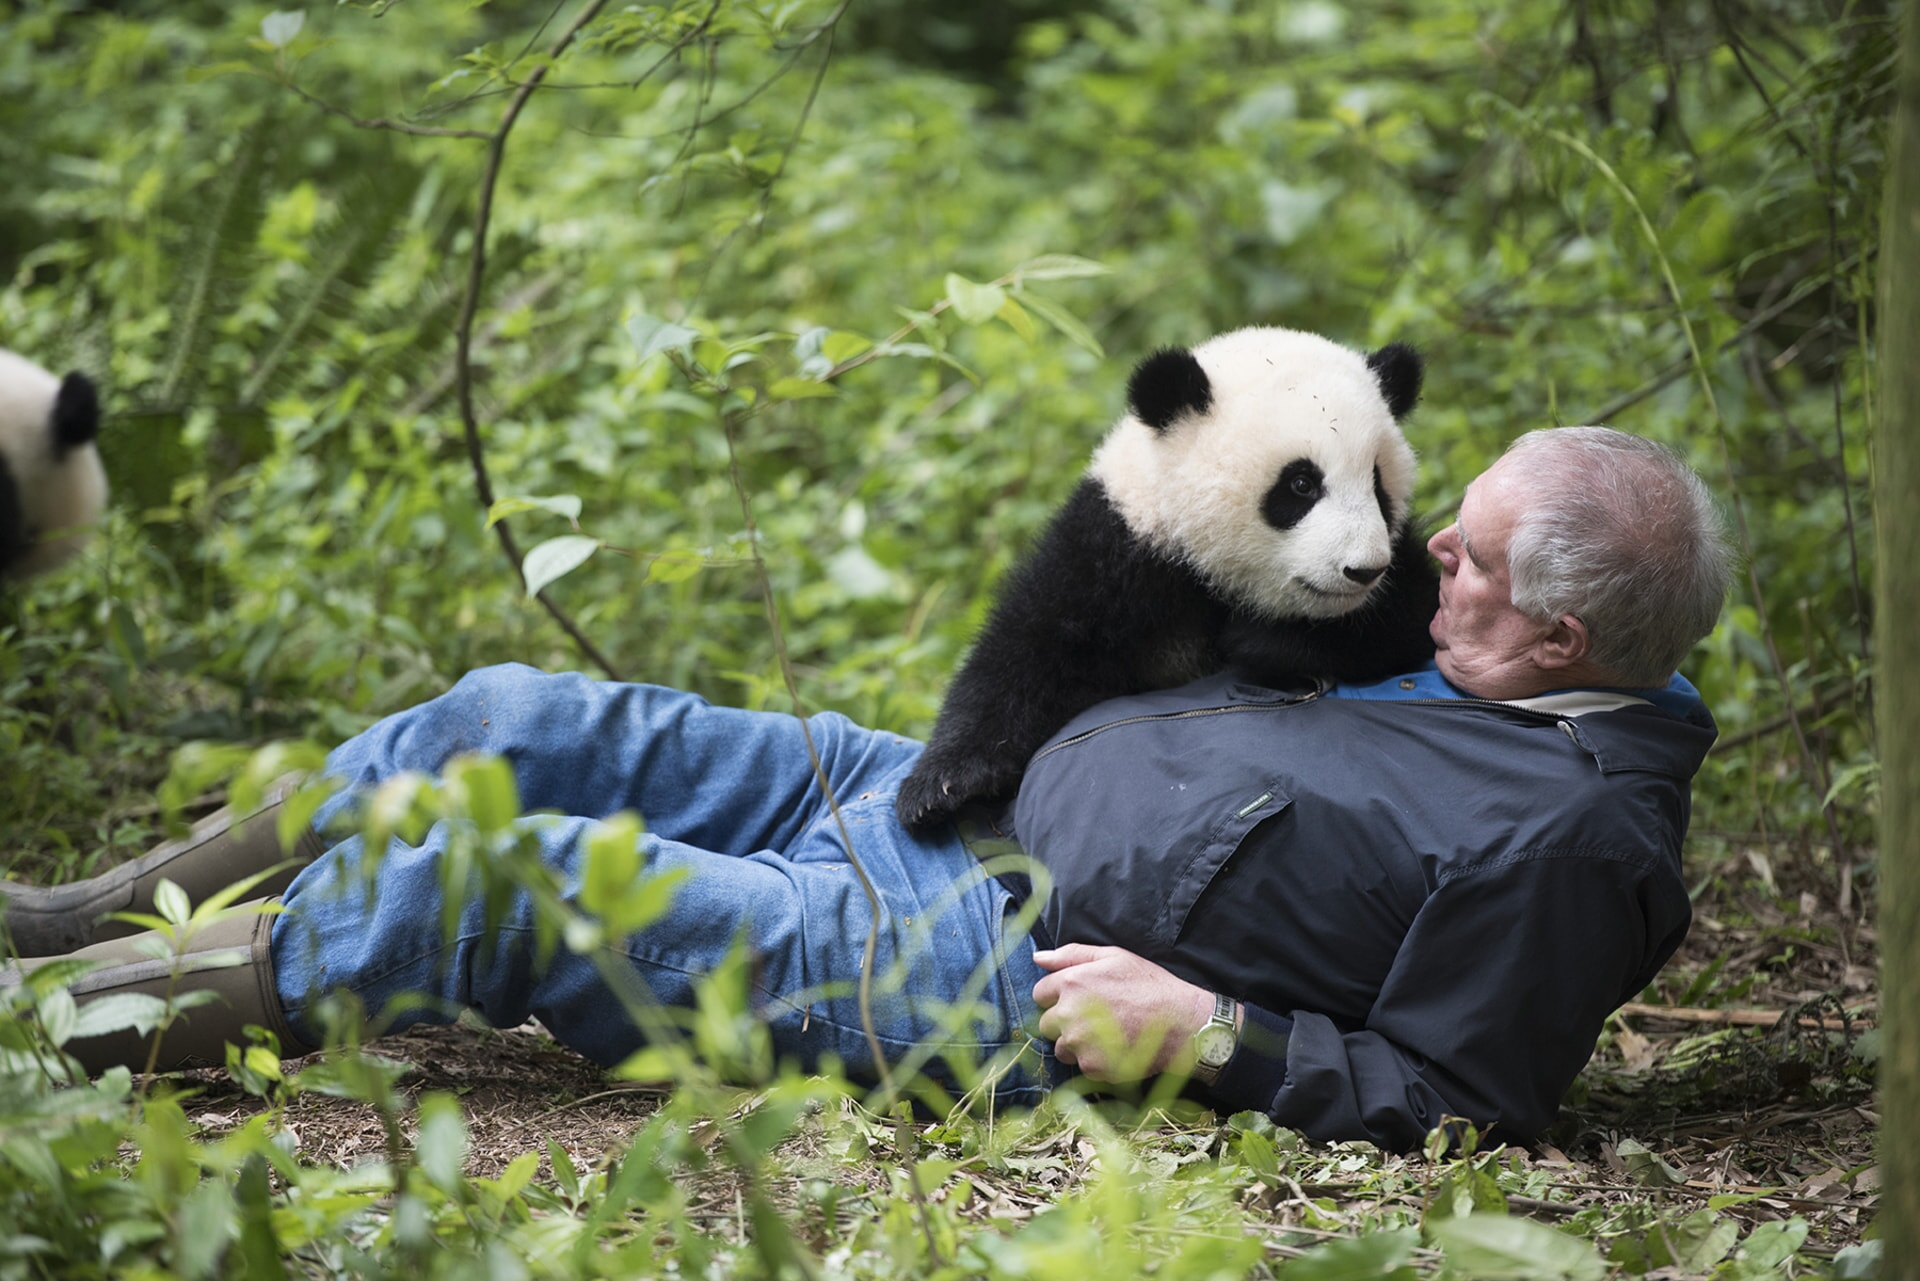 BEN KILHAM, Ph.D. (Independent Wildlife Biologist/Black Bear Behavior) with a Giant Panda at Panda Valley in Dujiangyan, China as seen in the new IMAX® film, PANDAS